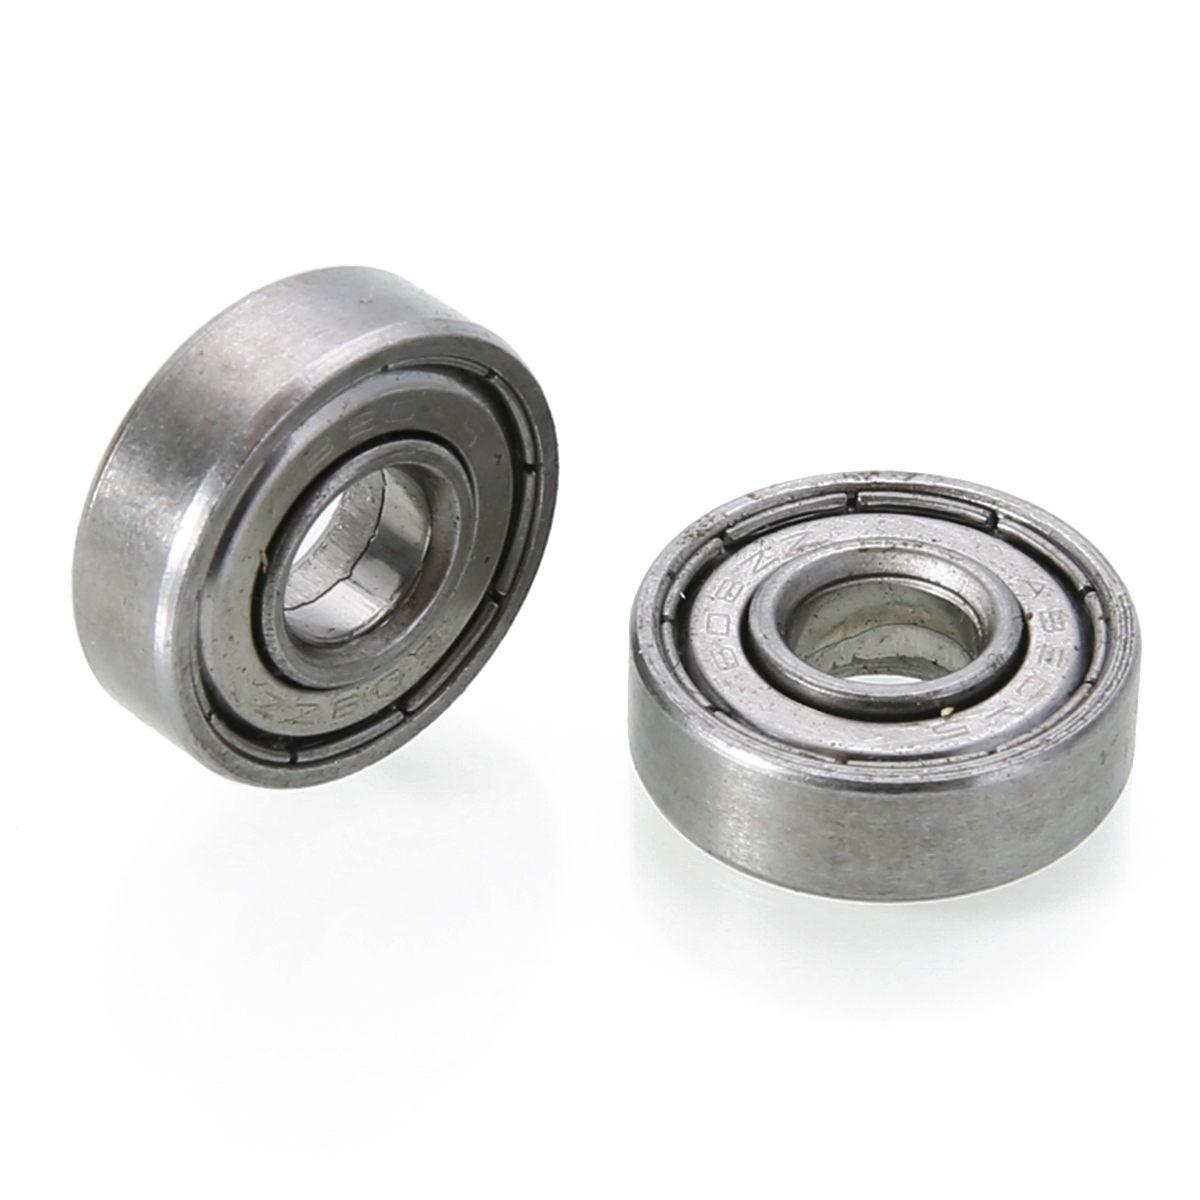 10pcs Small Wear 608zz Ball Bearing Mayitr Carbon Steel Precise Deep Groove Bearings For Skateboard Roller Blade Scooter кольца divetro кольца star